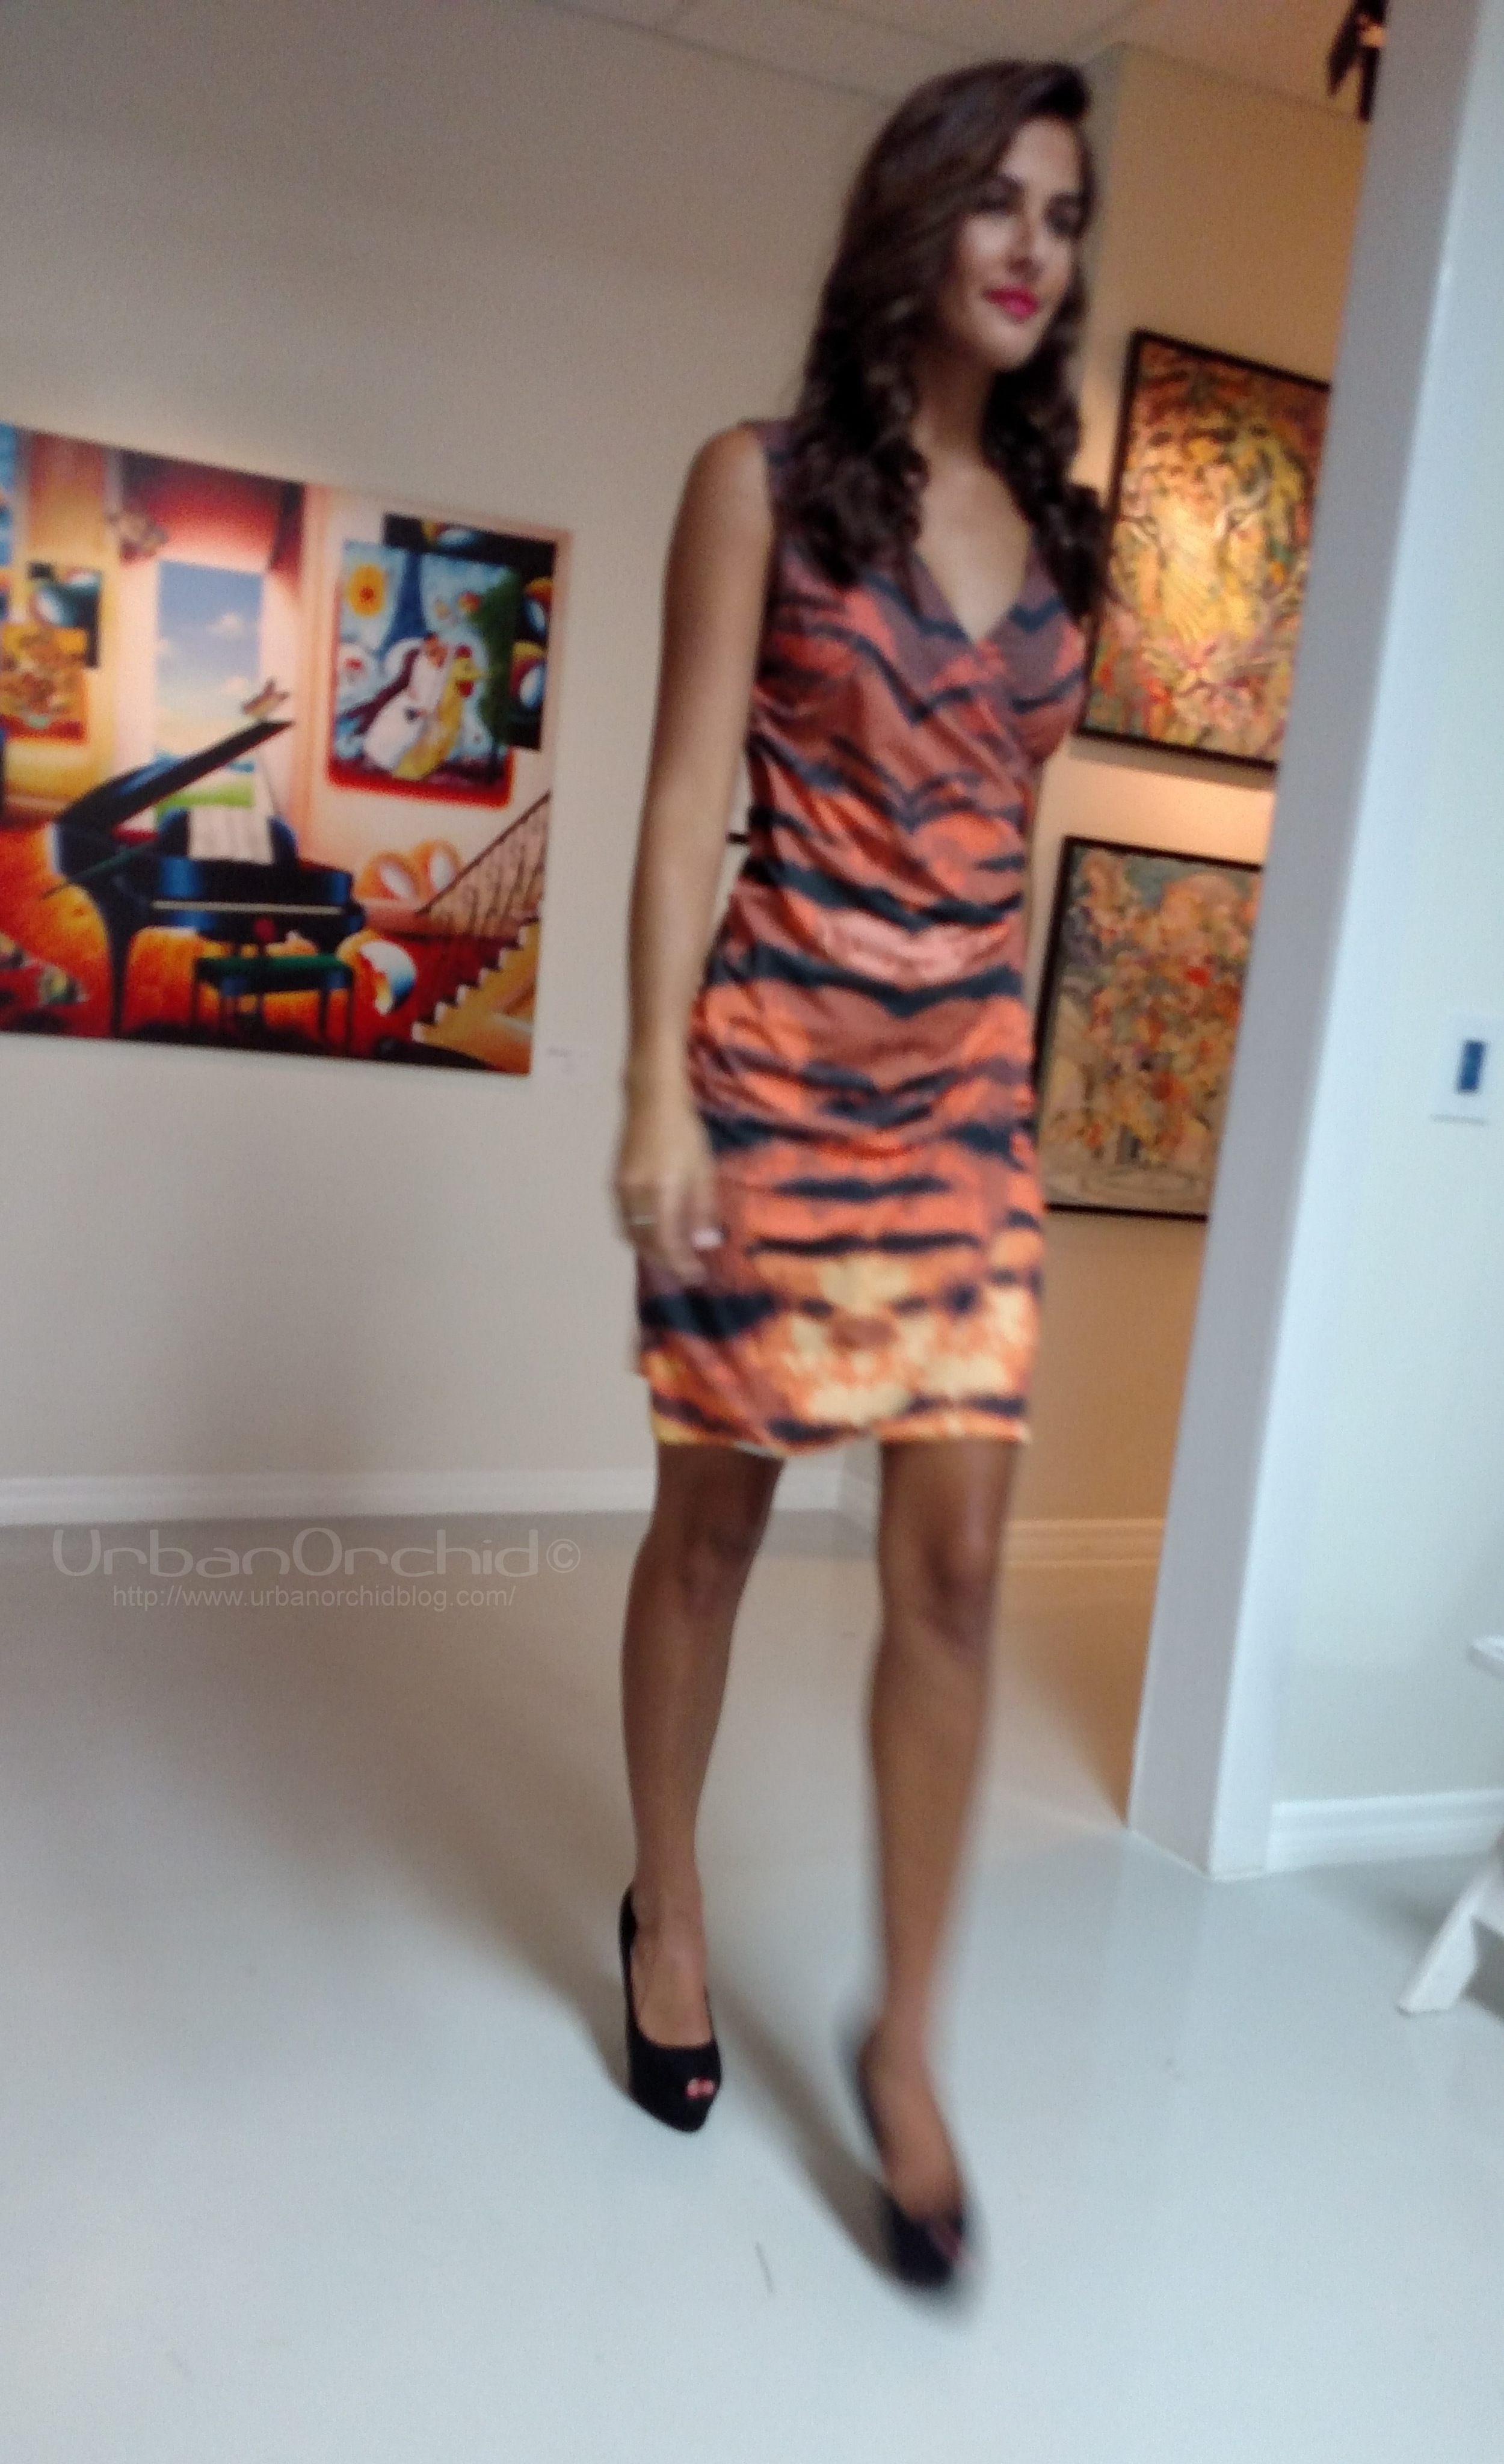 Carrie wrap dress from the Animal Collection - http://shop.strawberryblondeclothing.com/The-Carrie-Dress-Animal-Collection-56.htm